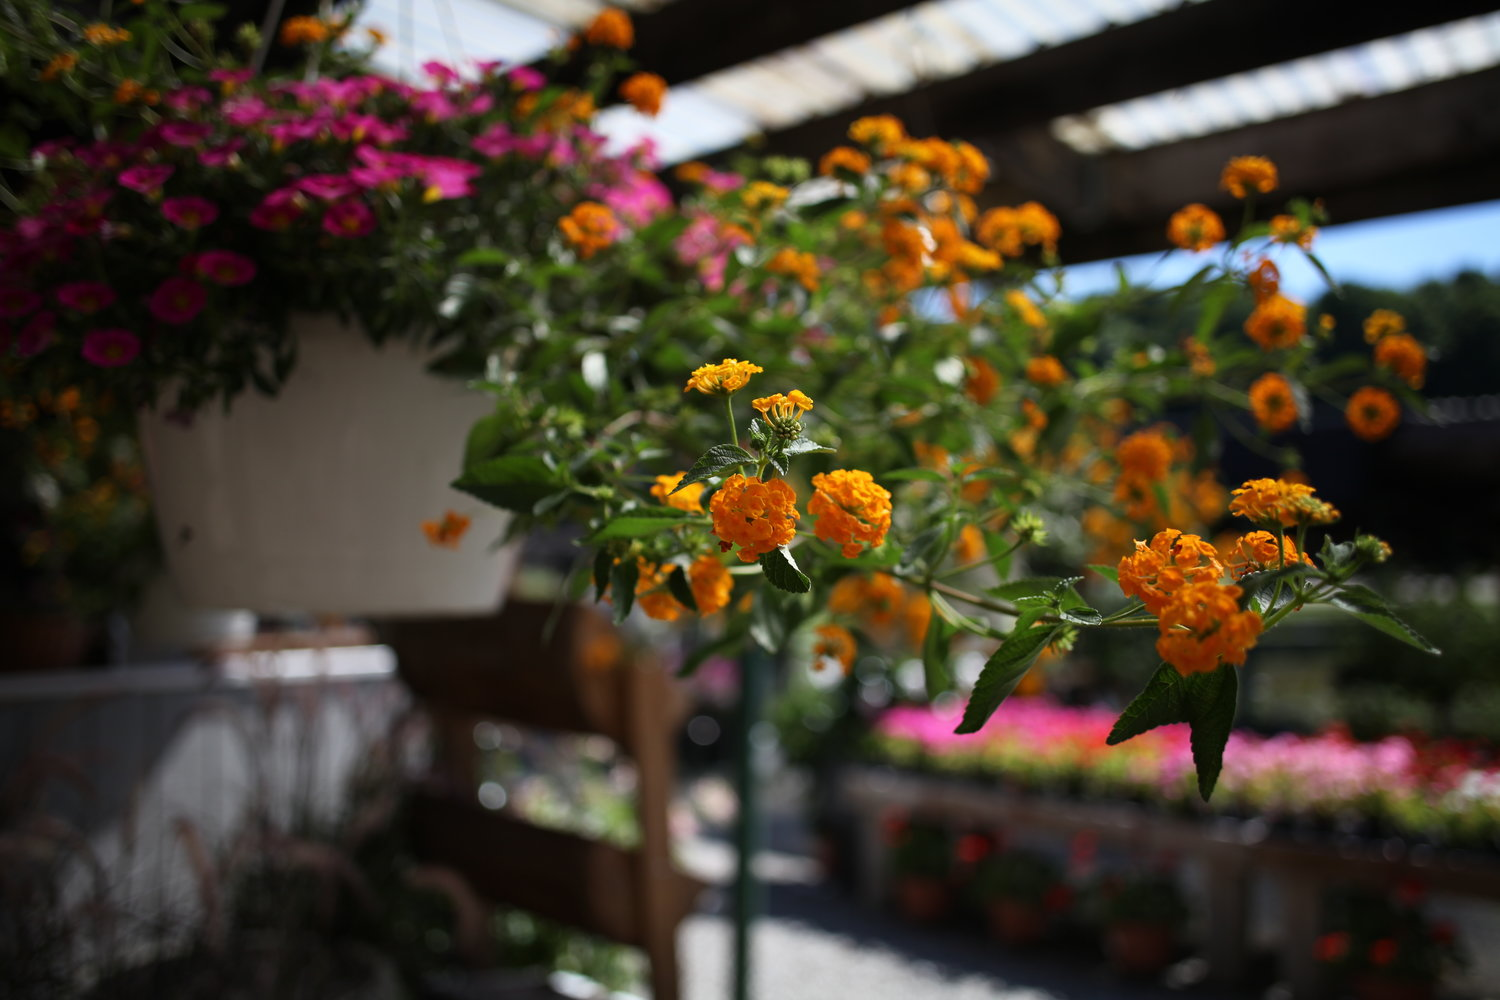 Annuals perennials pound ridge nursery and garden center annual flowers add vibrancy and color to any garden scheme the innumerable shades and shapes available from bedding plants and large specialty annuals are izmirmasajfo